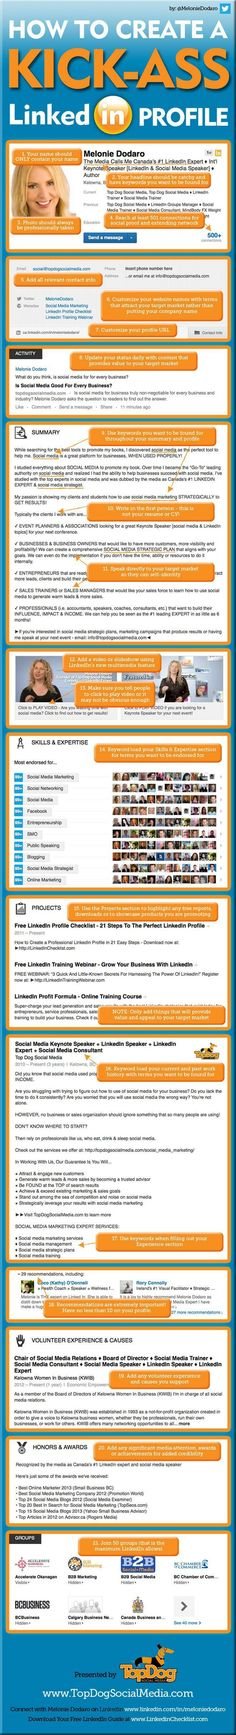 21 Steps to Create an Awesome #LinkedIn Profile - Jeffbullas's Blog #infographic #branding